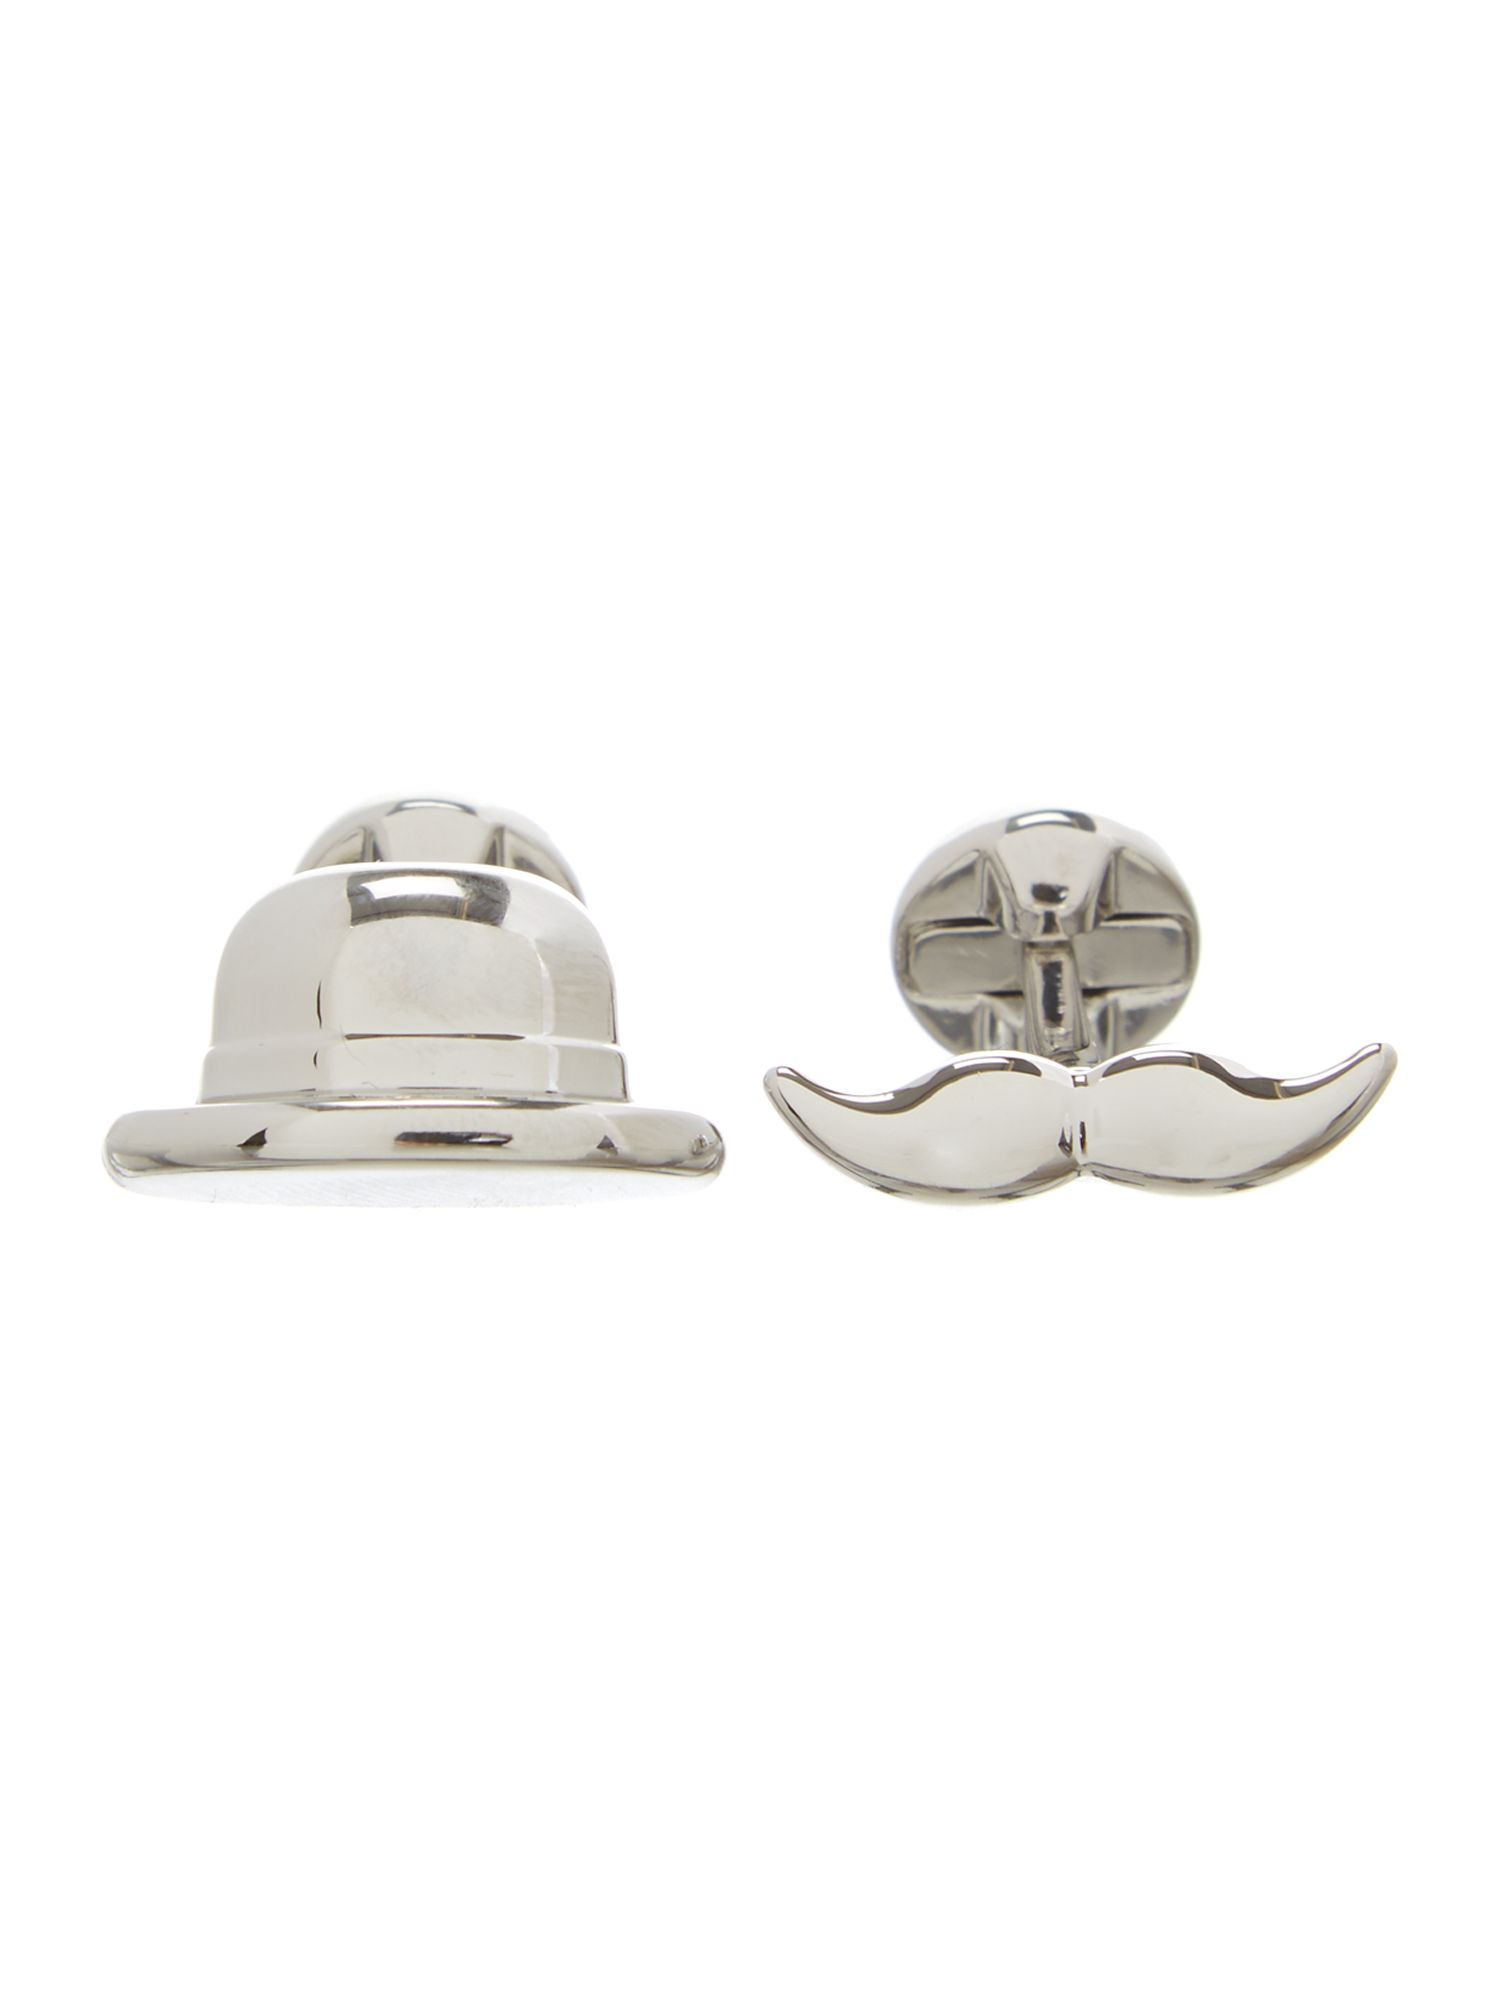 Top hat and moustache cufflinks